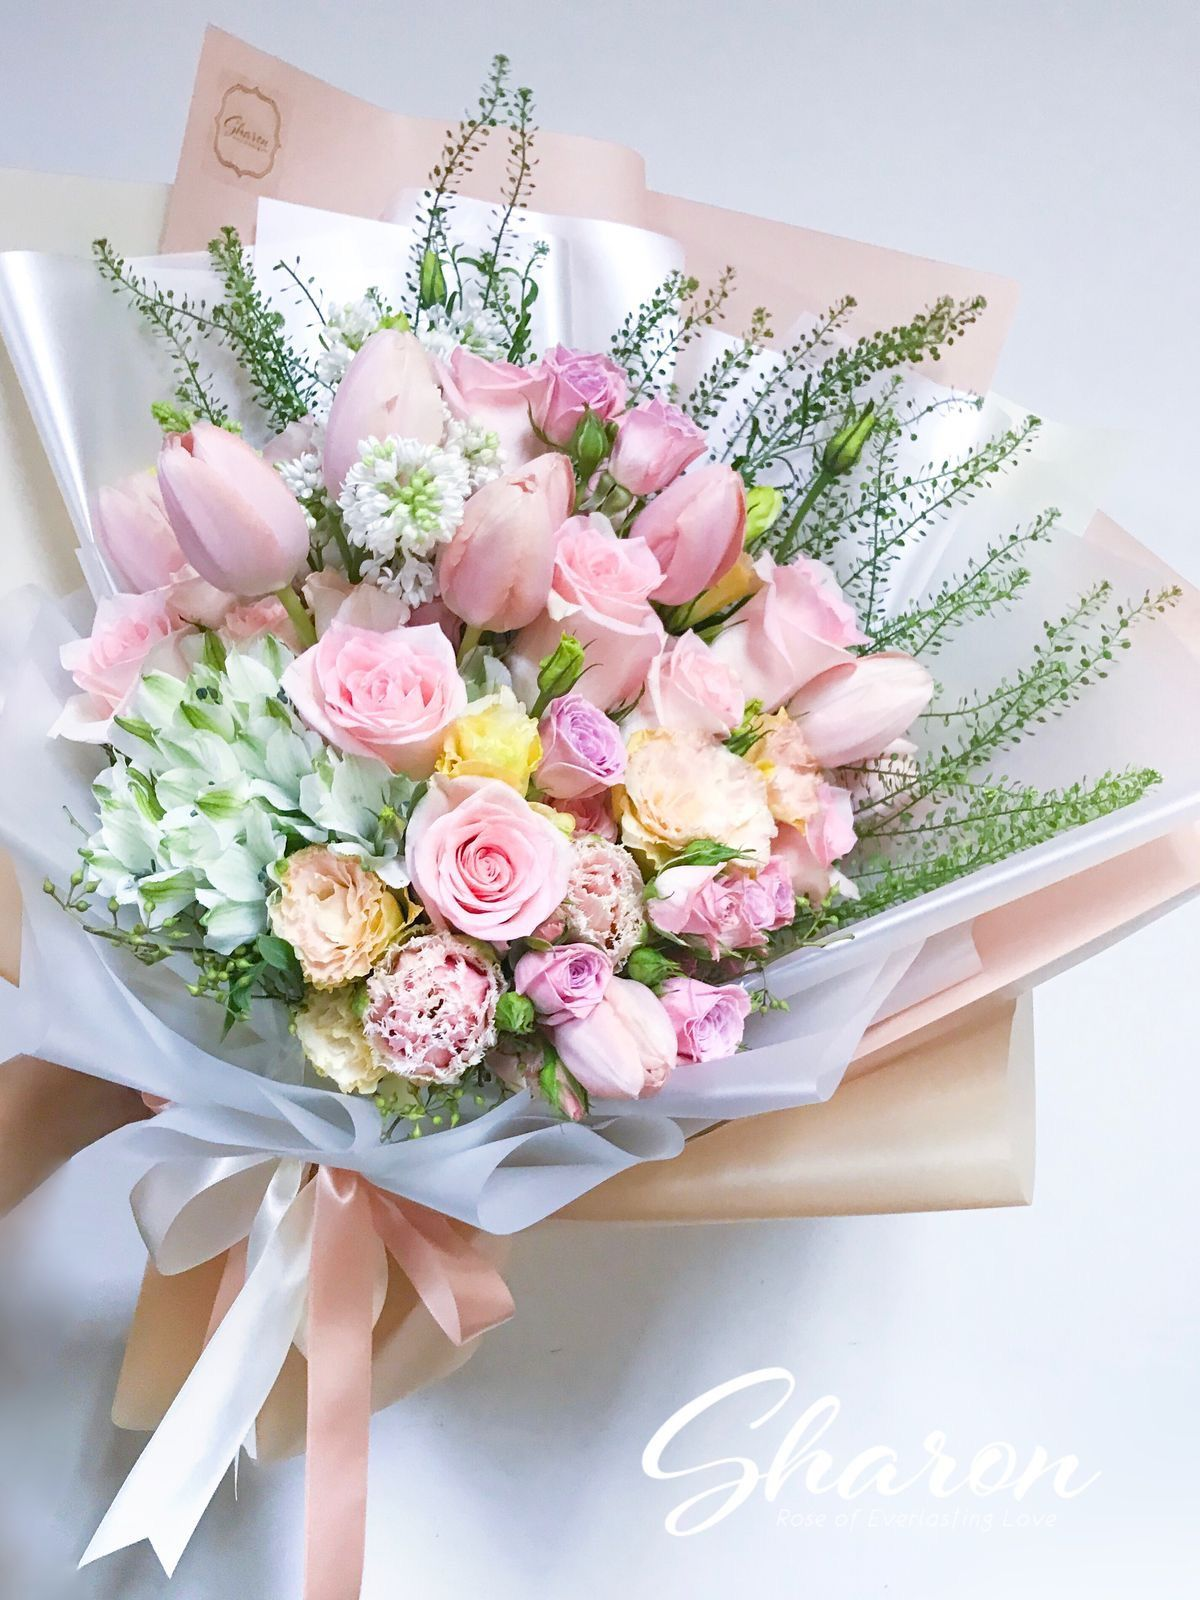 Pinterest Martiblogs Instagram Martytestaferri12 Flowers Bouquet Gift Flowers Bouquet Beautiful Flower Arrangements